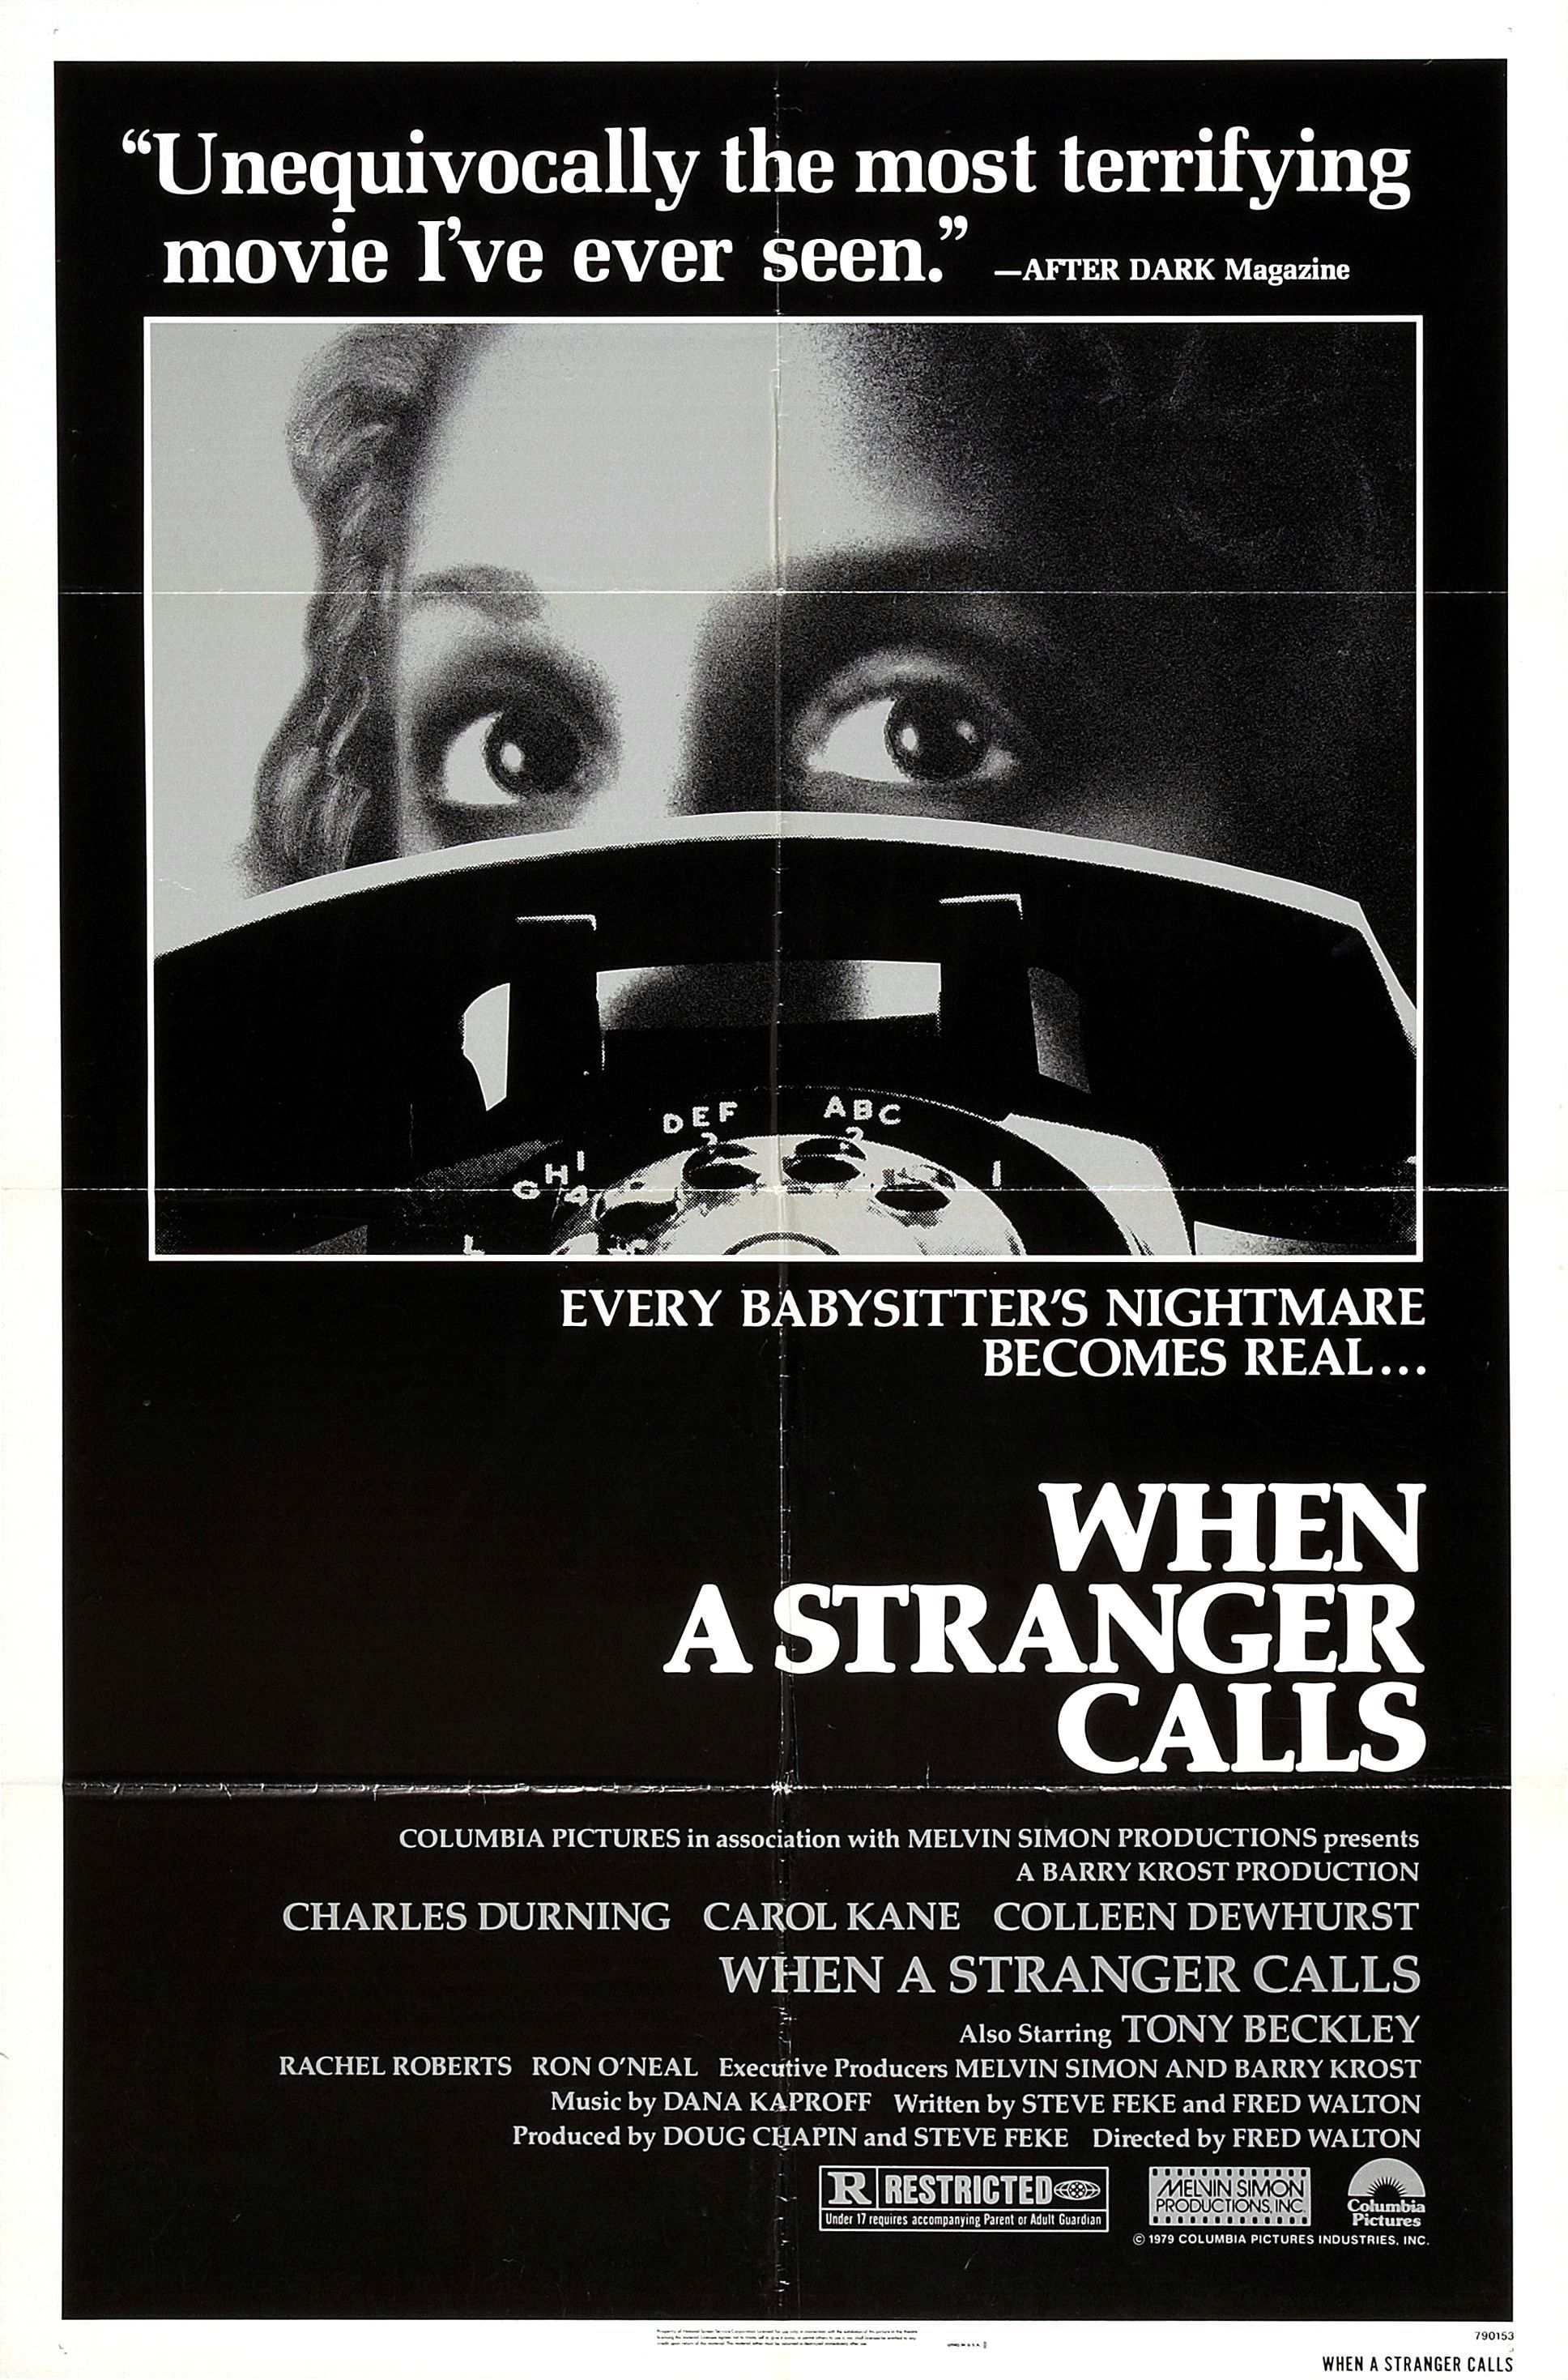 when a stranger calls movie posters film usa and when a stranger calls movie posters film usa and when a stranger calls